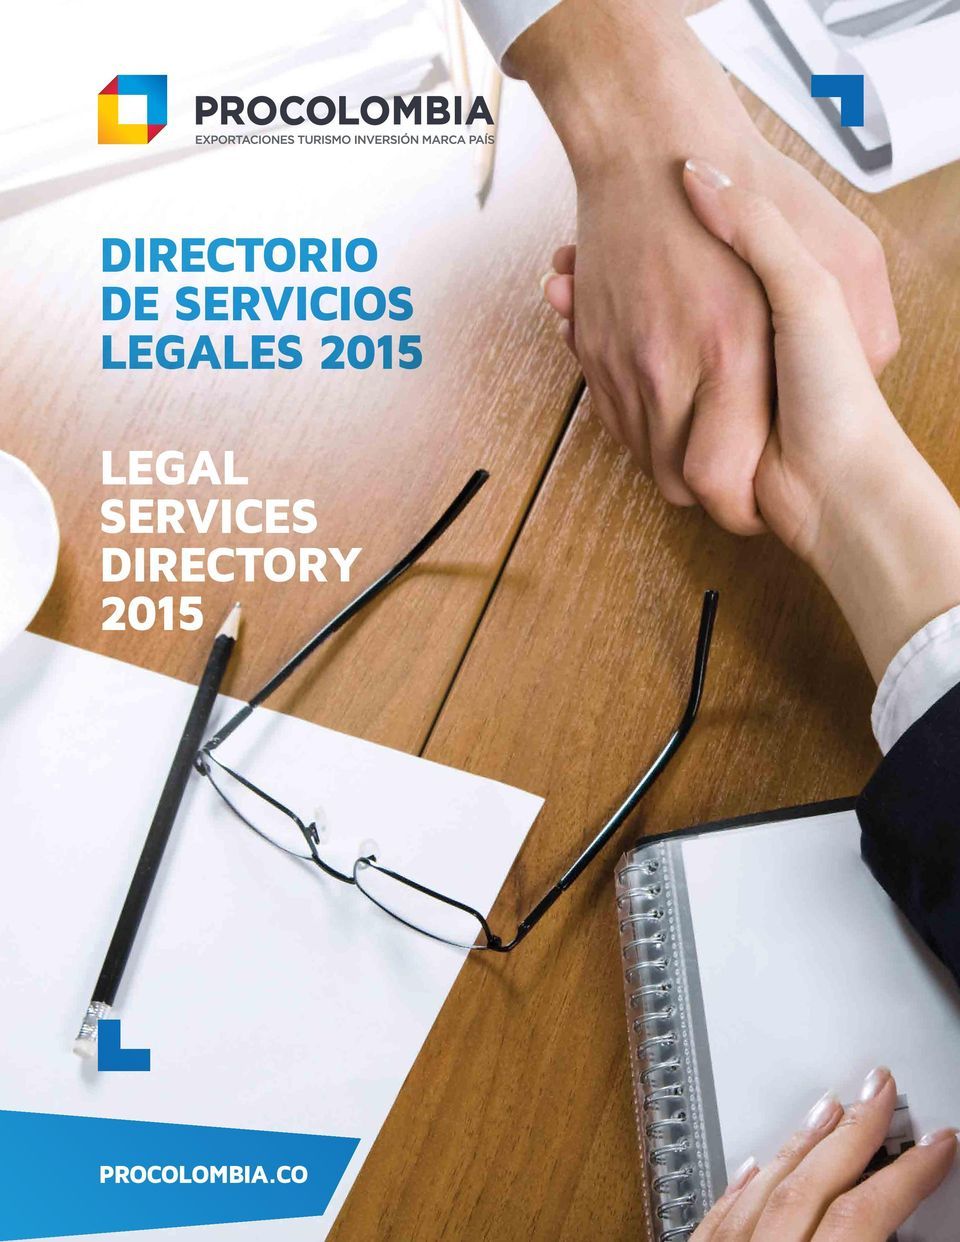 2015 LEGAL LEGAL SERVICES DIRECTORY